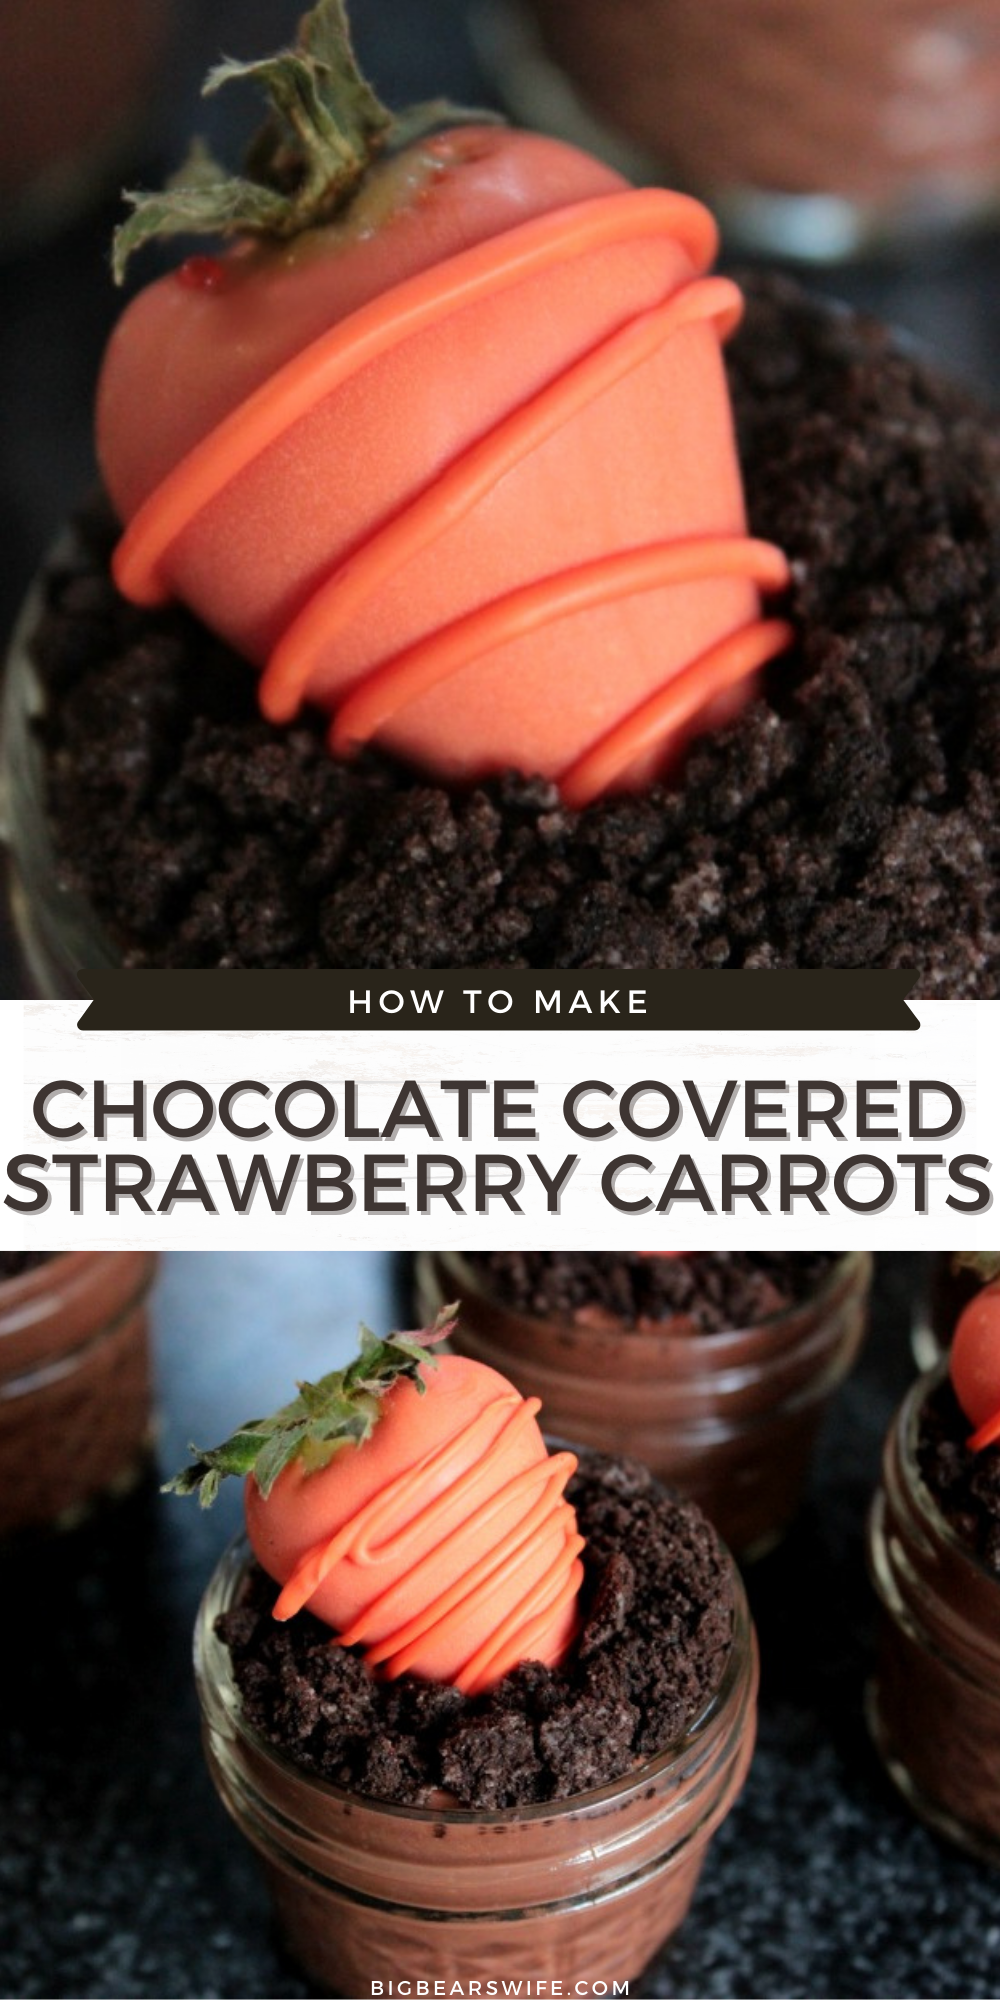 These cute spring dessert pudding cups are topped with easy to make Chocolate Covered Strawberry Carrots! They're the perfect dessert for celebrating Easter or Springtime!   via @bigbearswife